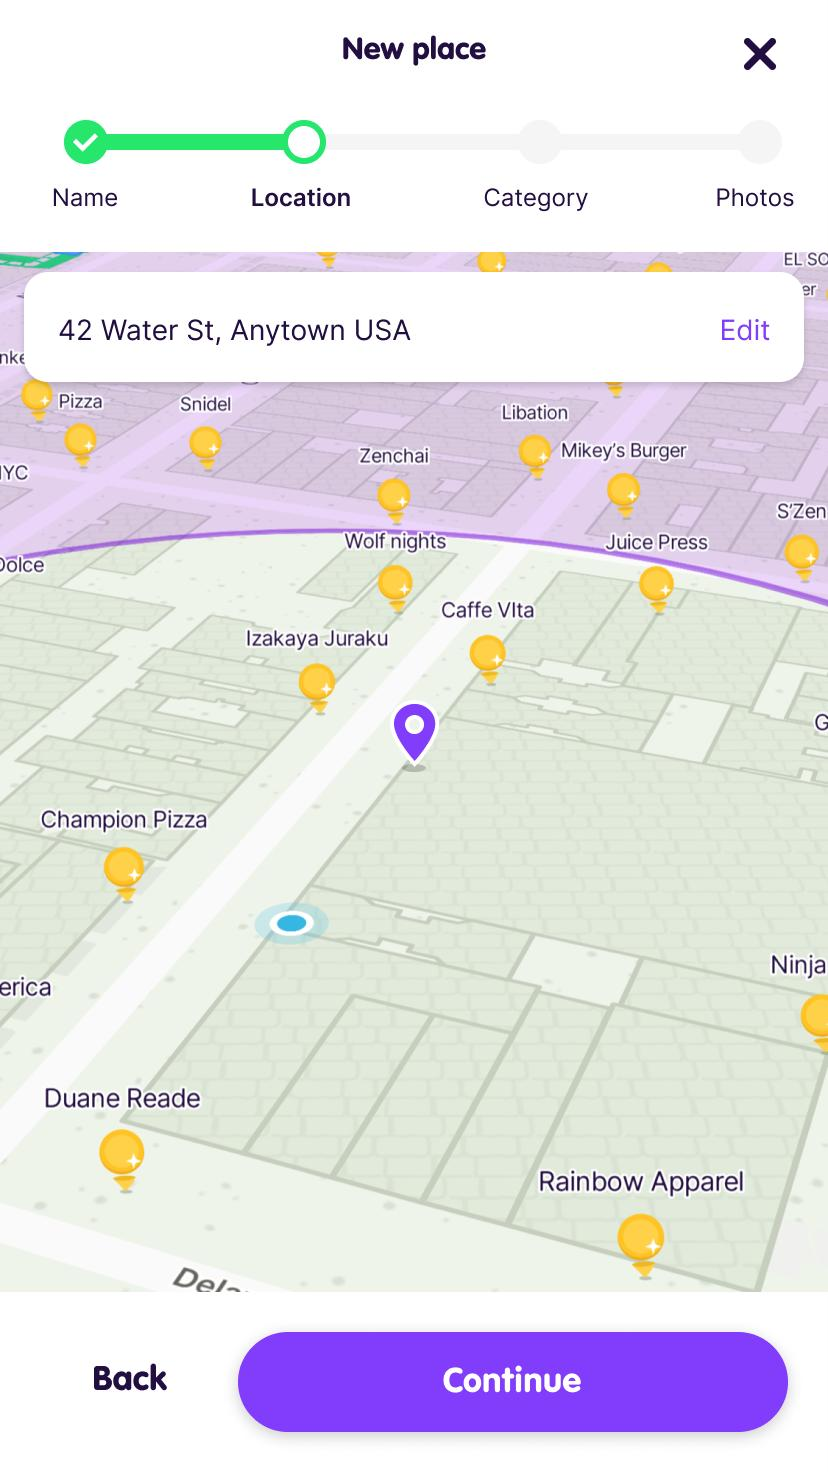 The Location screen of the Add Place flow